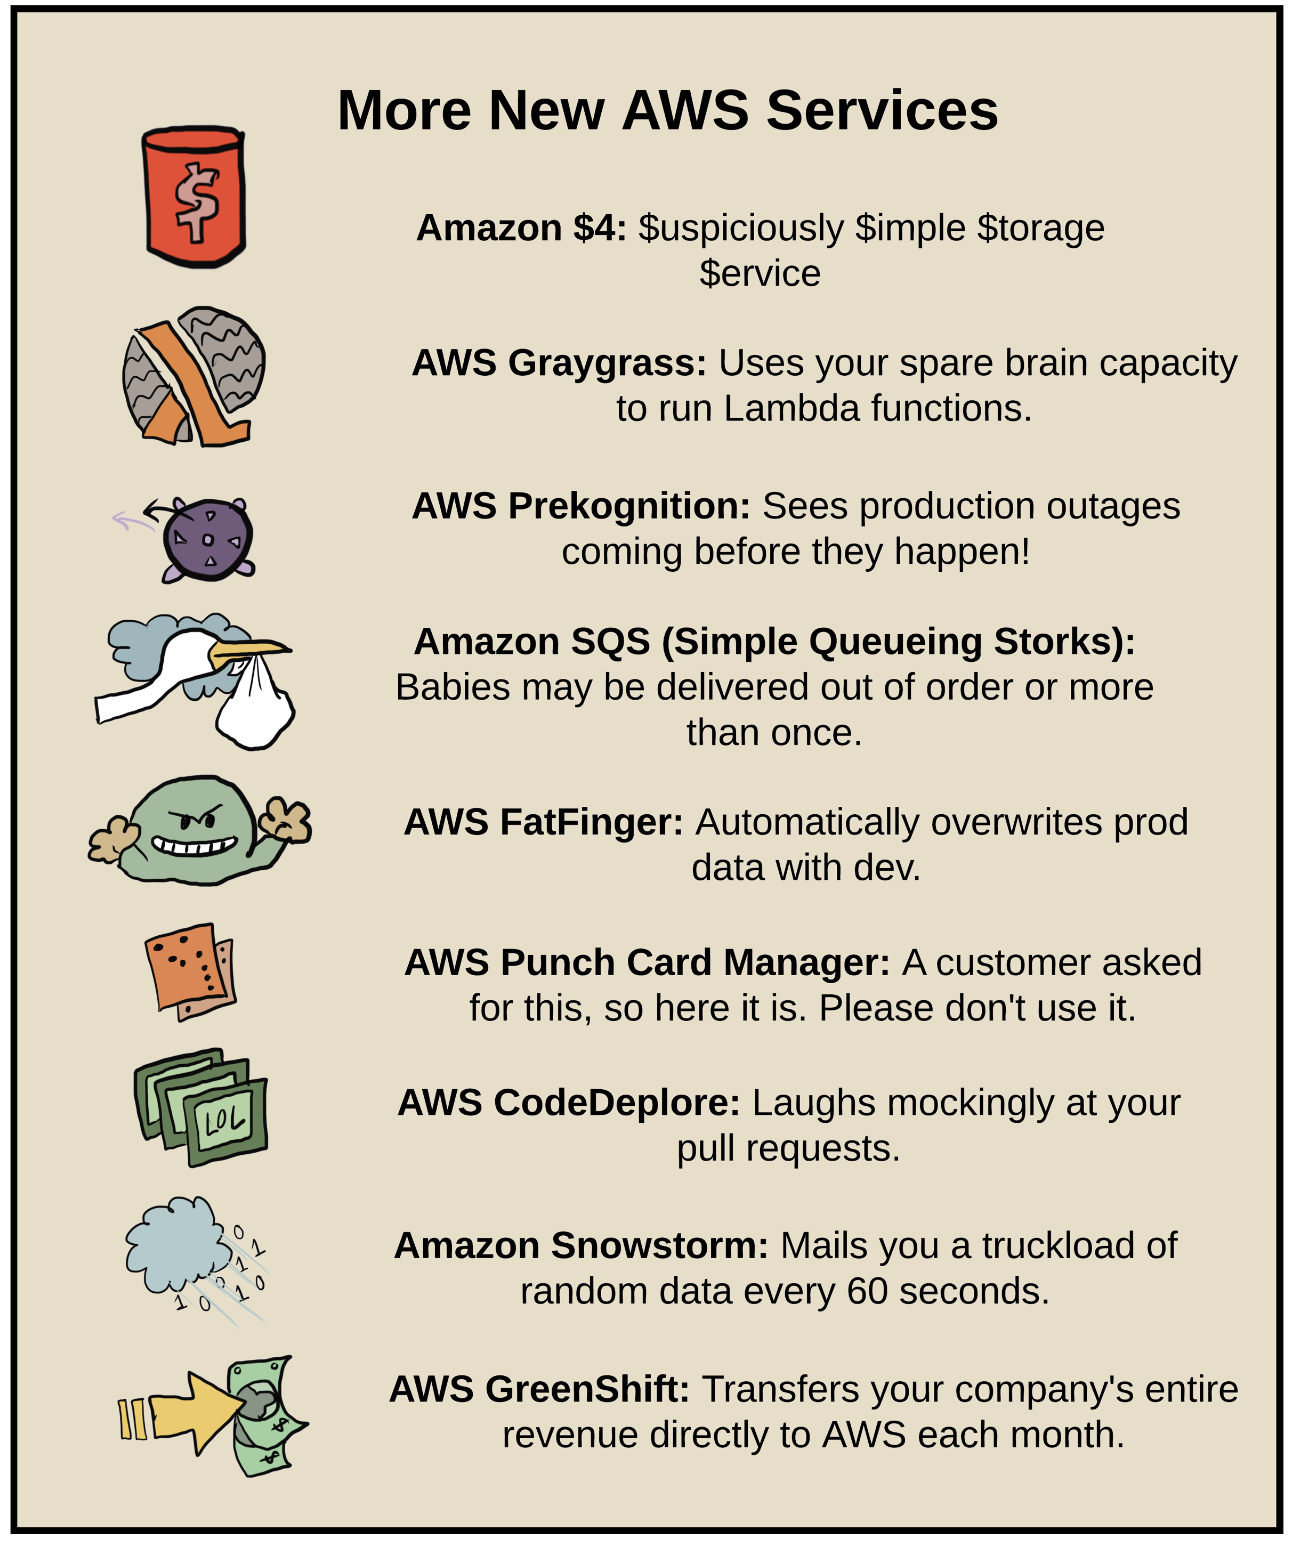 More New AWS Services